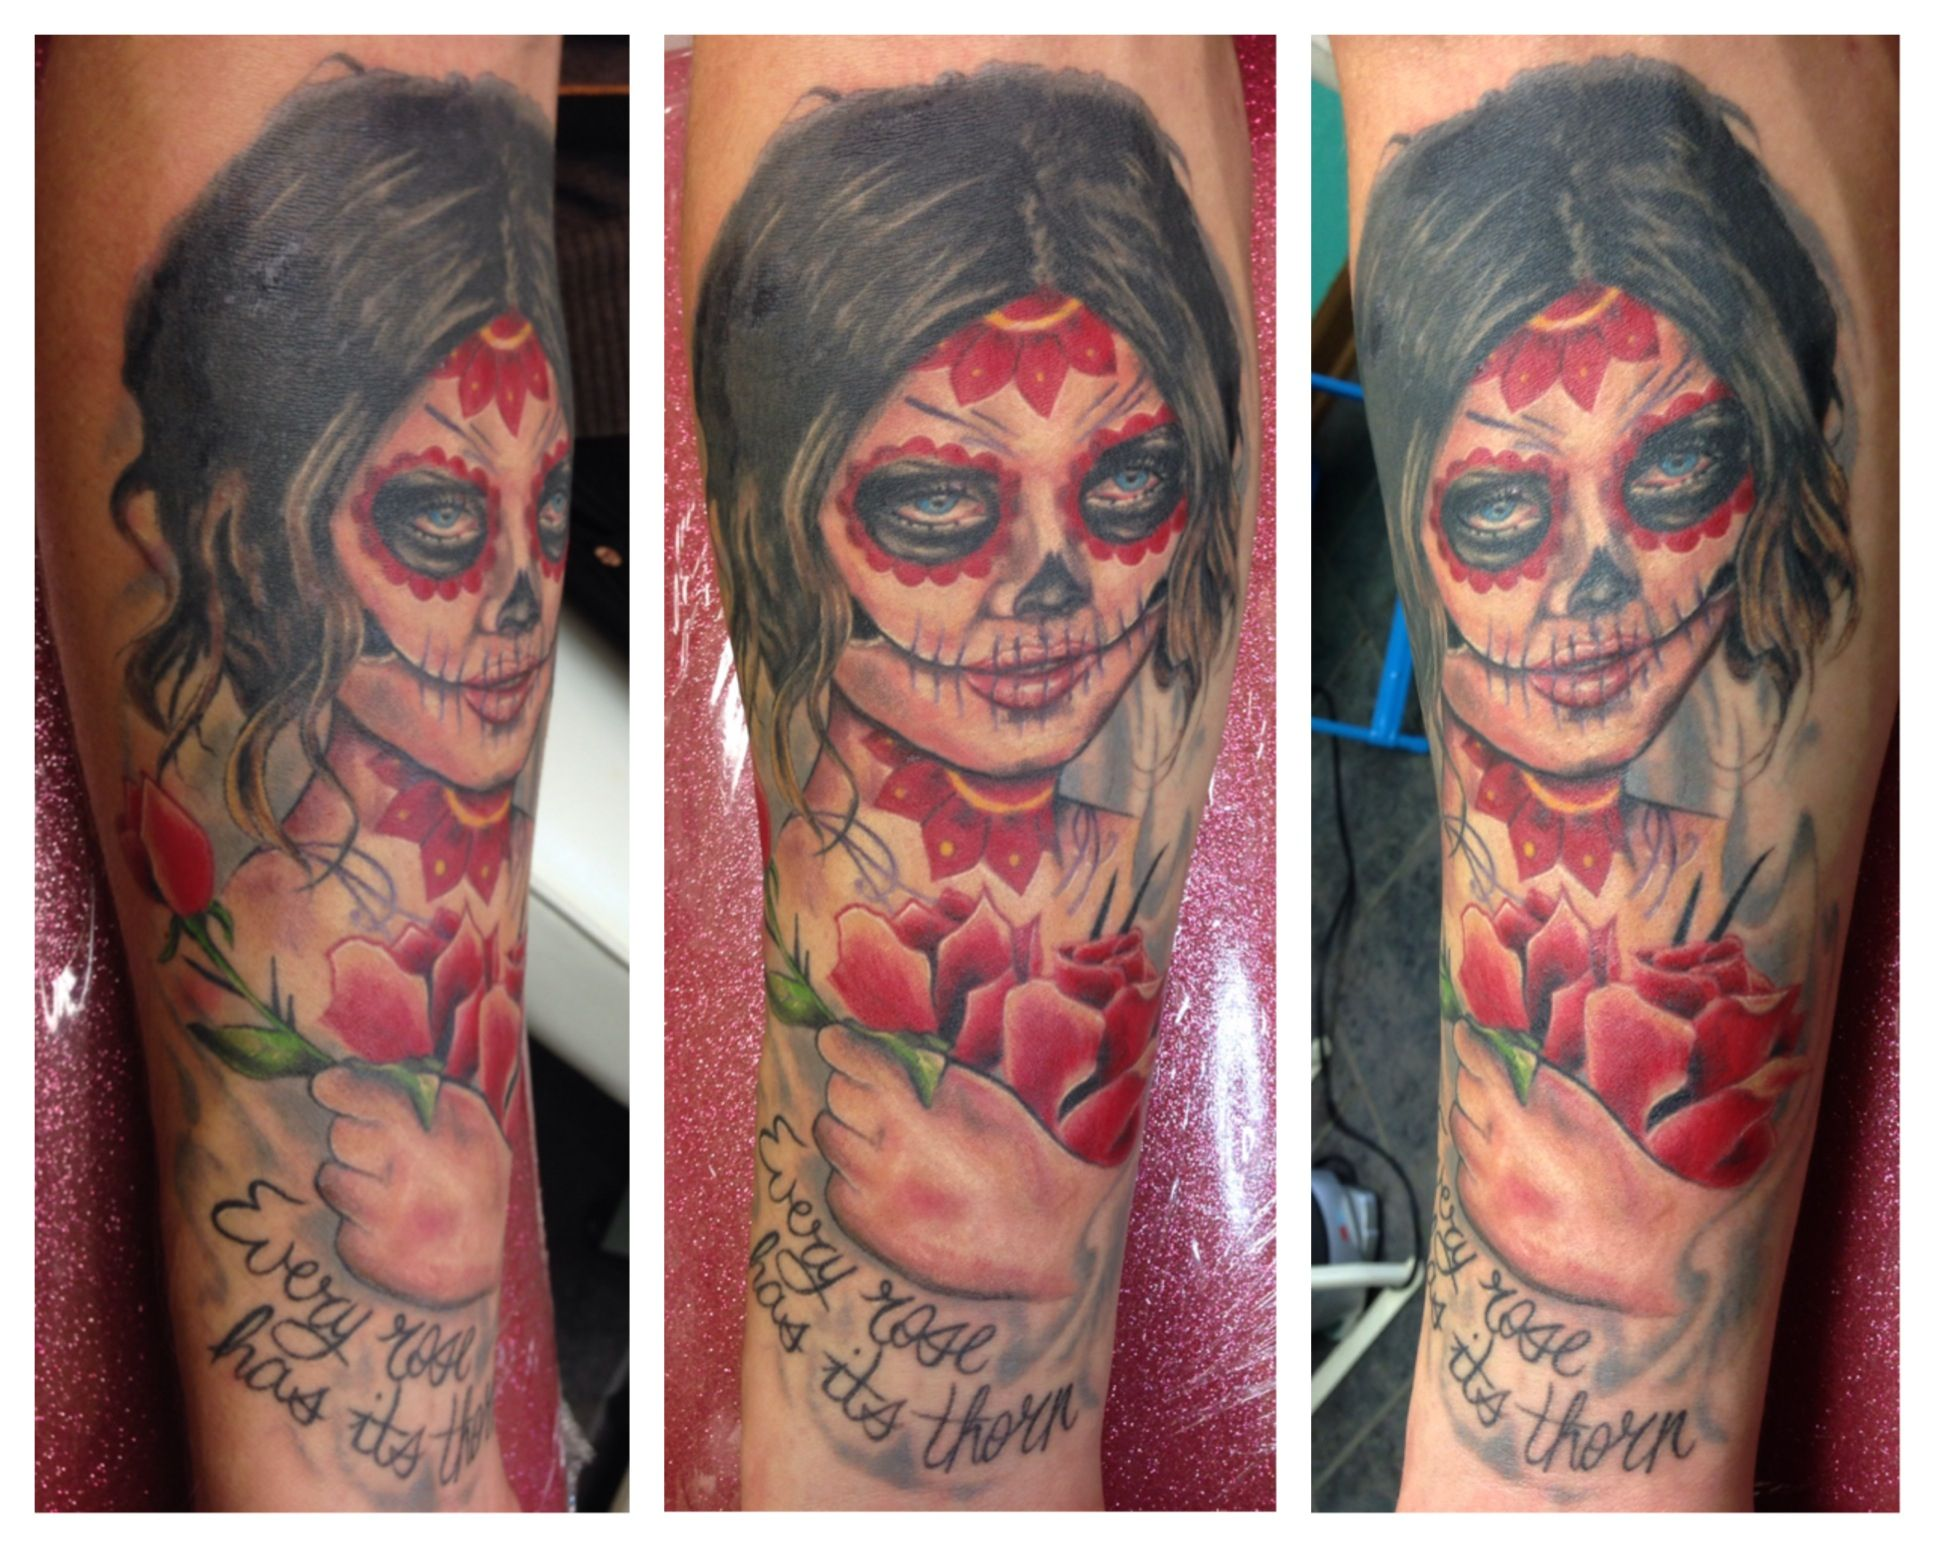 Tiffany Sutton Tattoo Artist: Day Of The Dead Lady Tattoo By Tiffany Michael